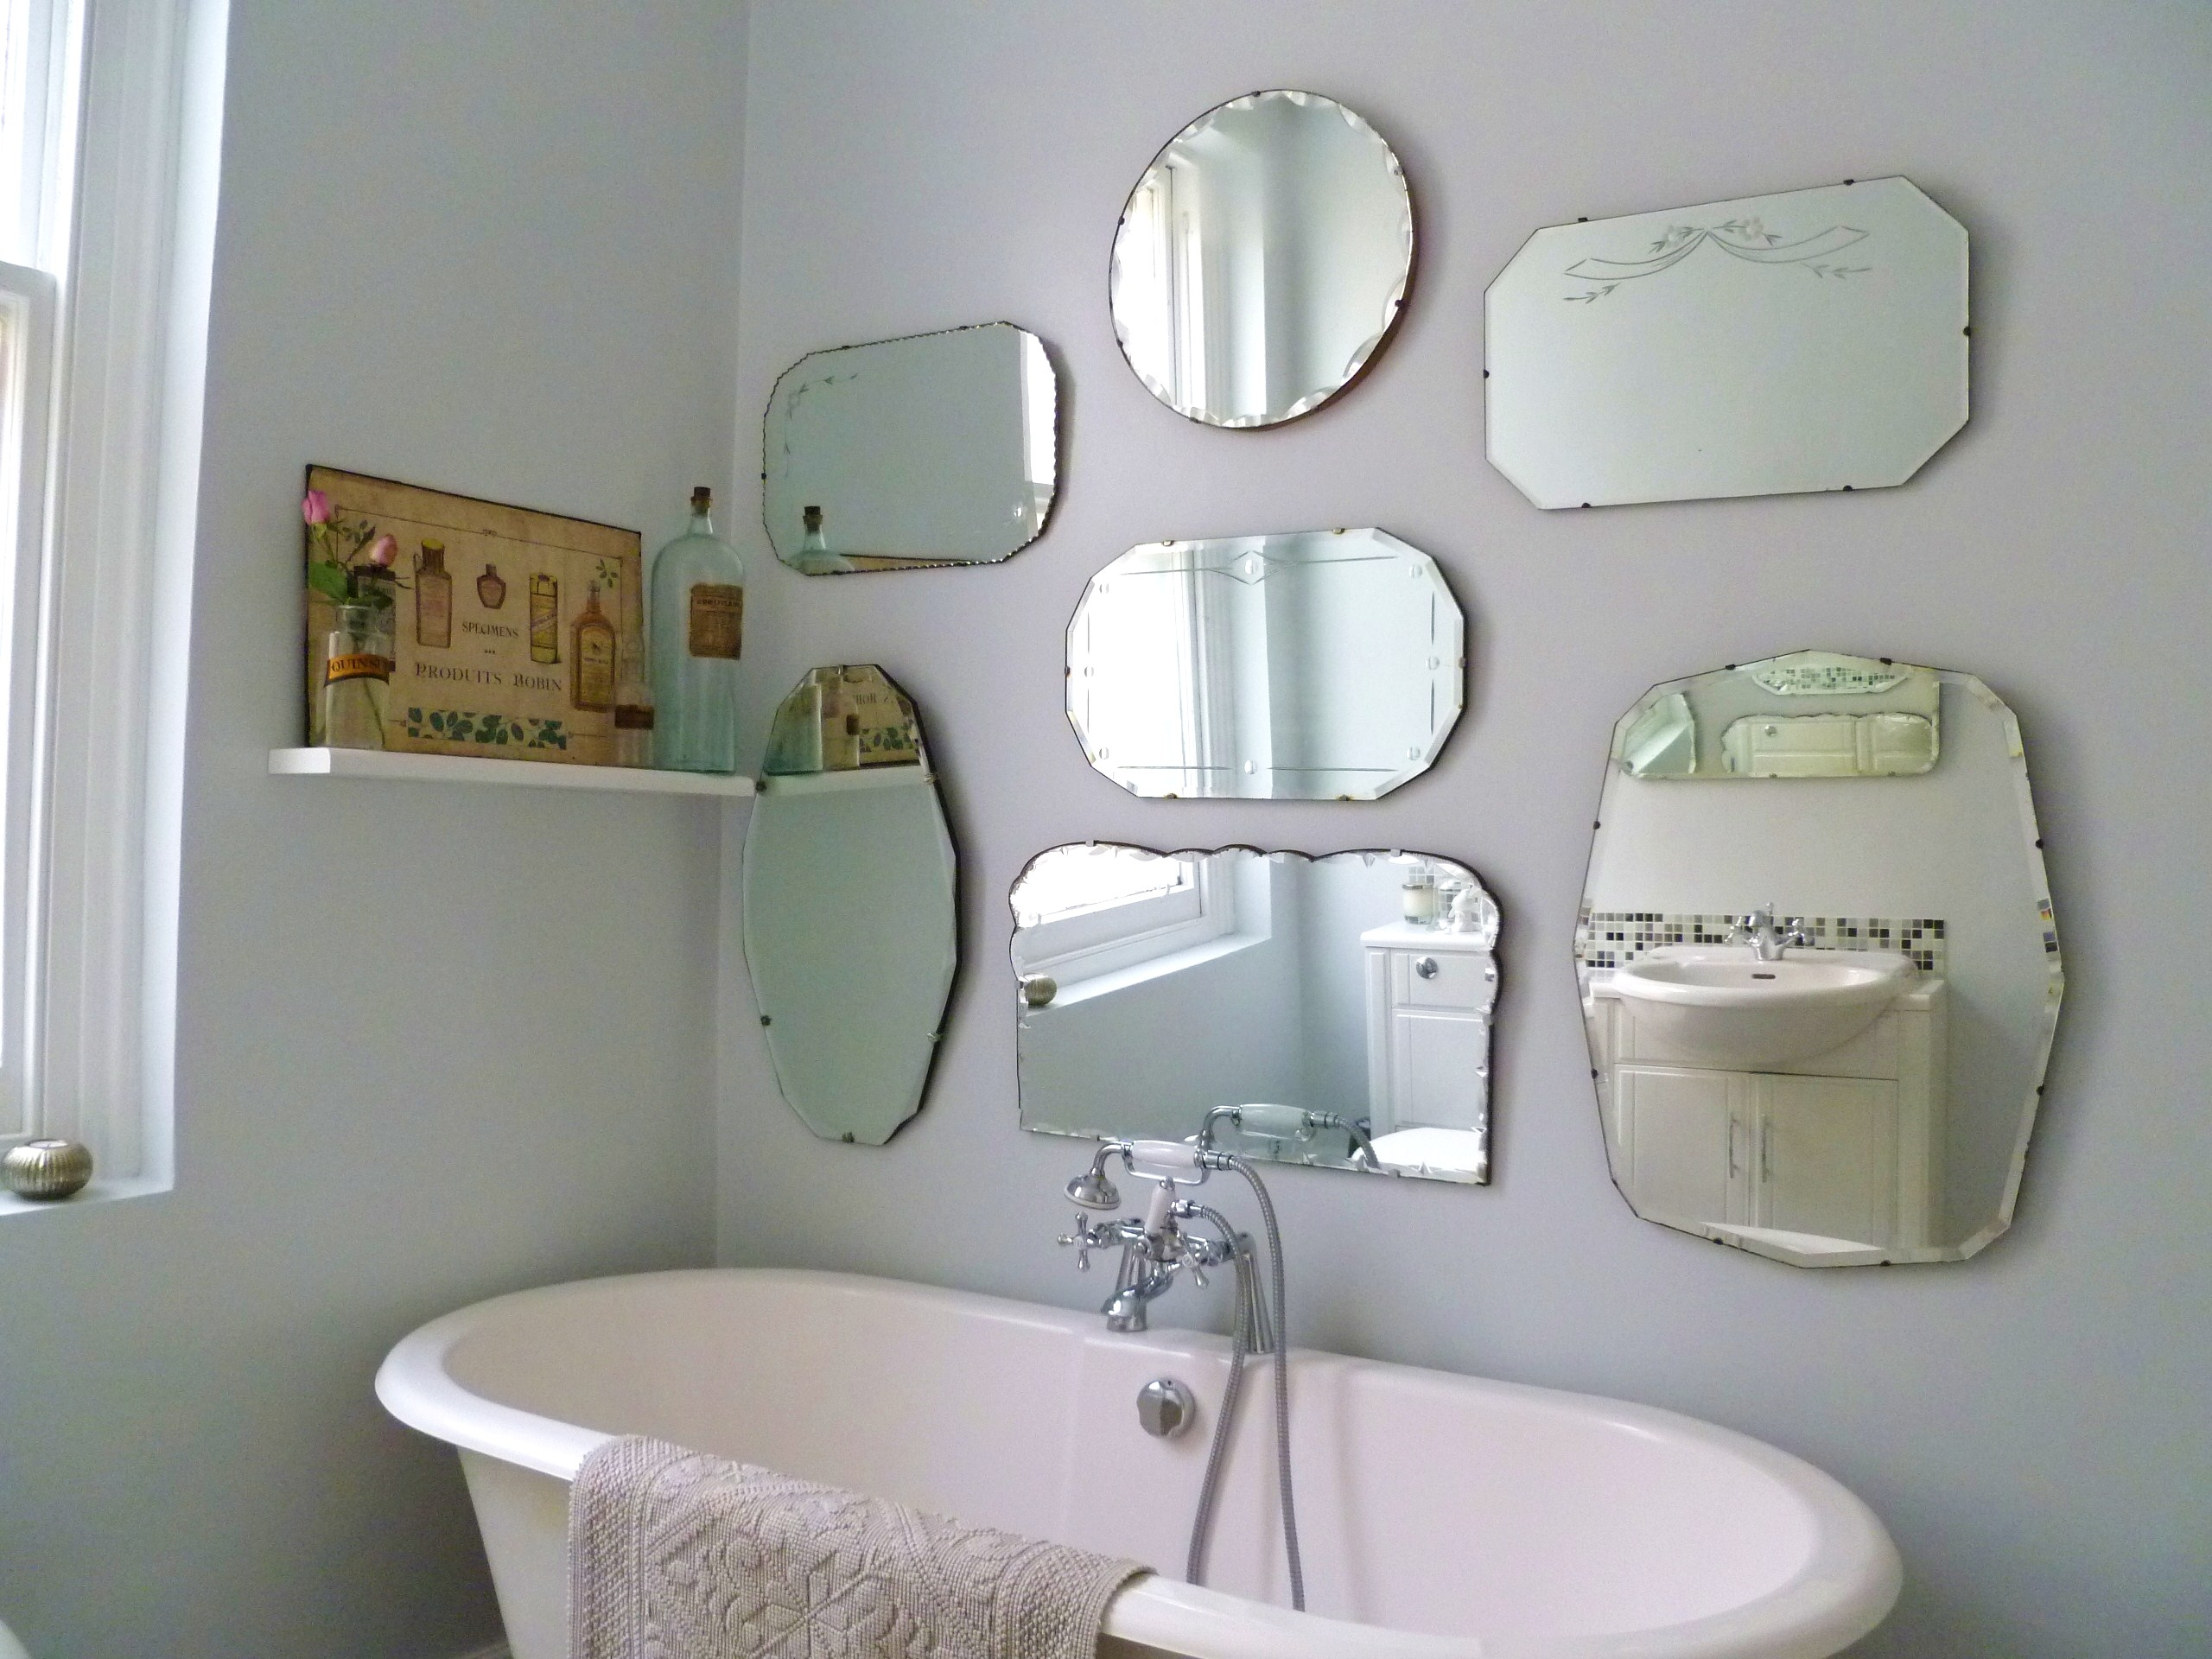 Modest Design Vintage Wall Mirrors Prissy Ideas Beautifull With Regard To Vintage Style Bathroom Mirrors (Image 8 of 15)